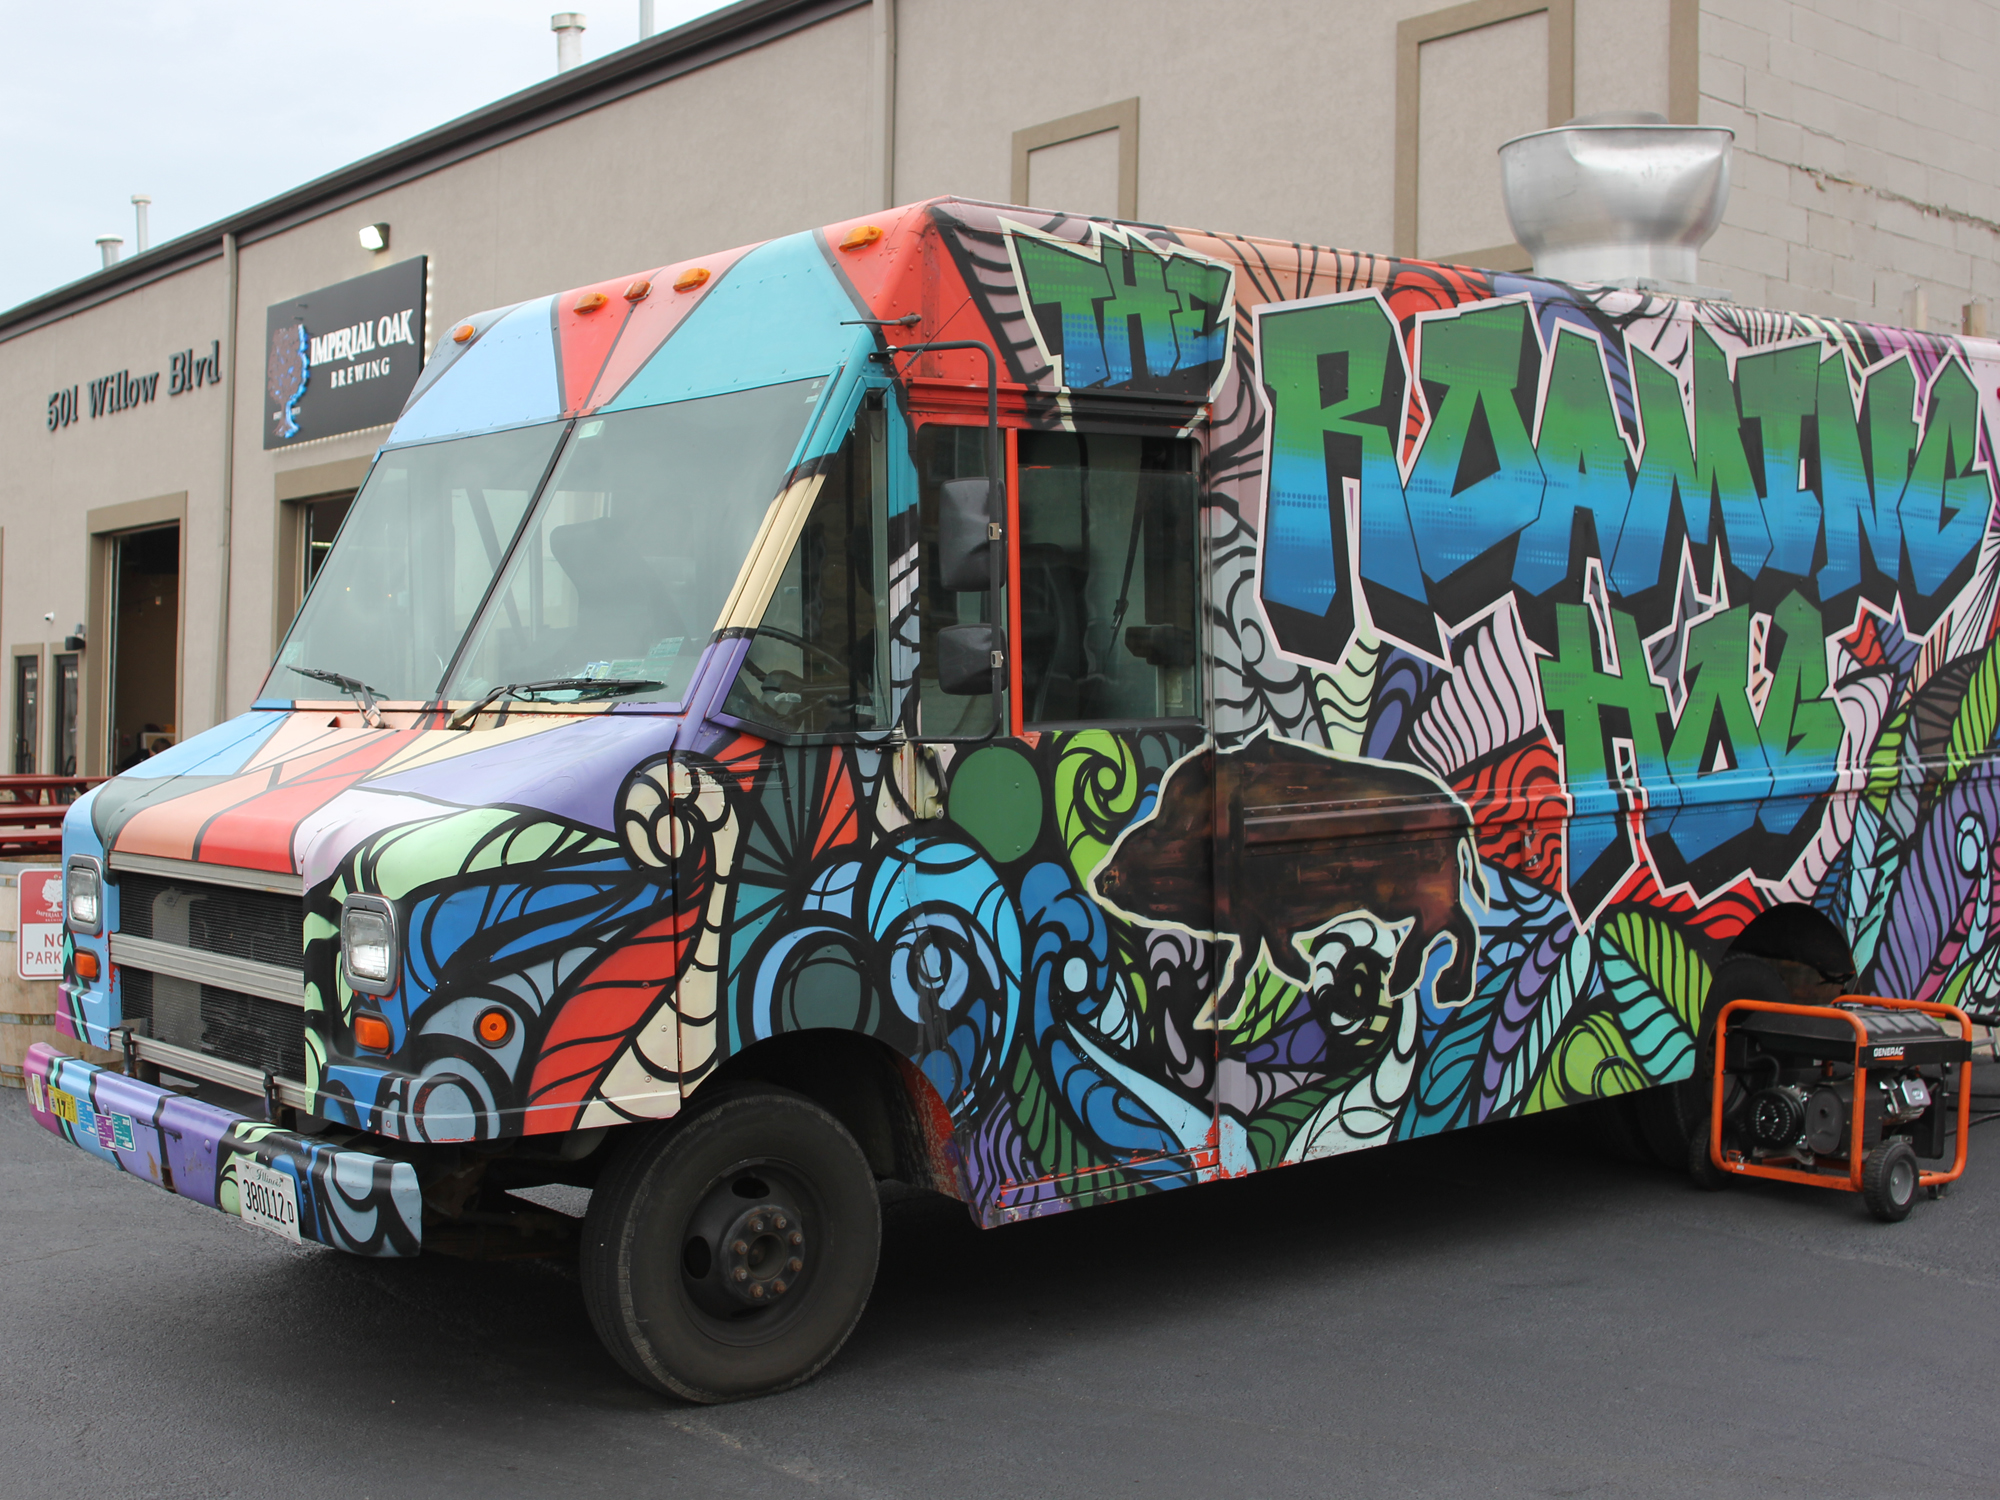 THE FOOD TRUCK DREAM IS ALIVE AND WELL—AT BREWERIES IN THE SUBURBS